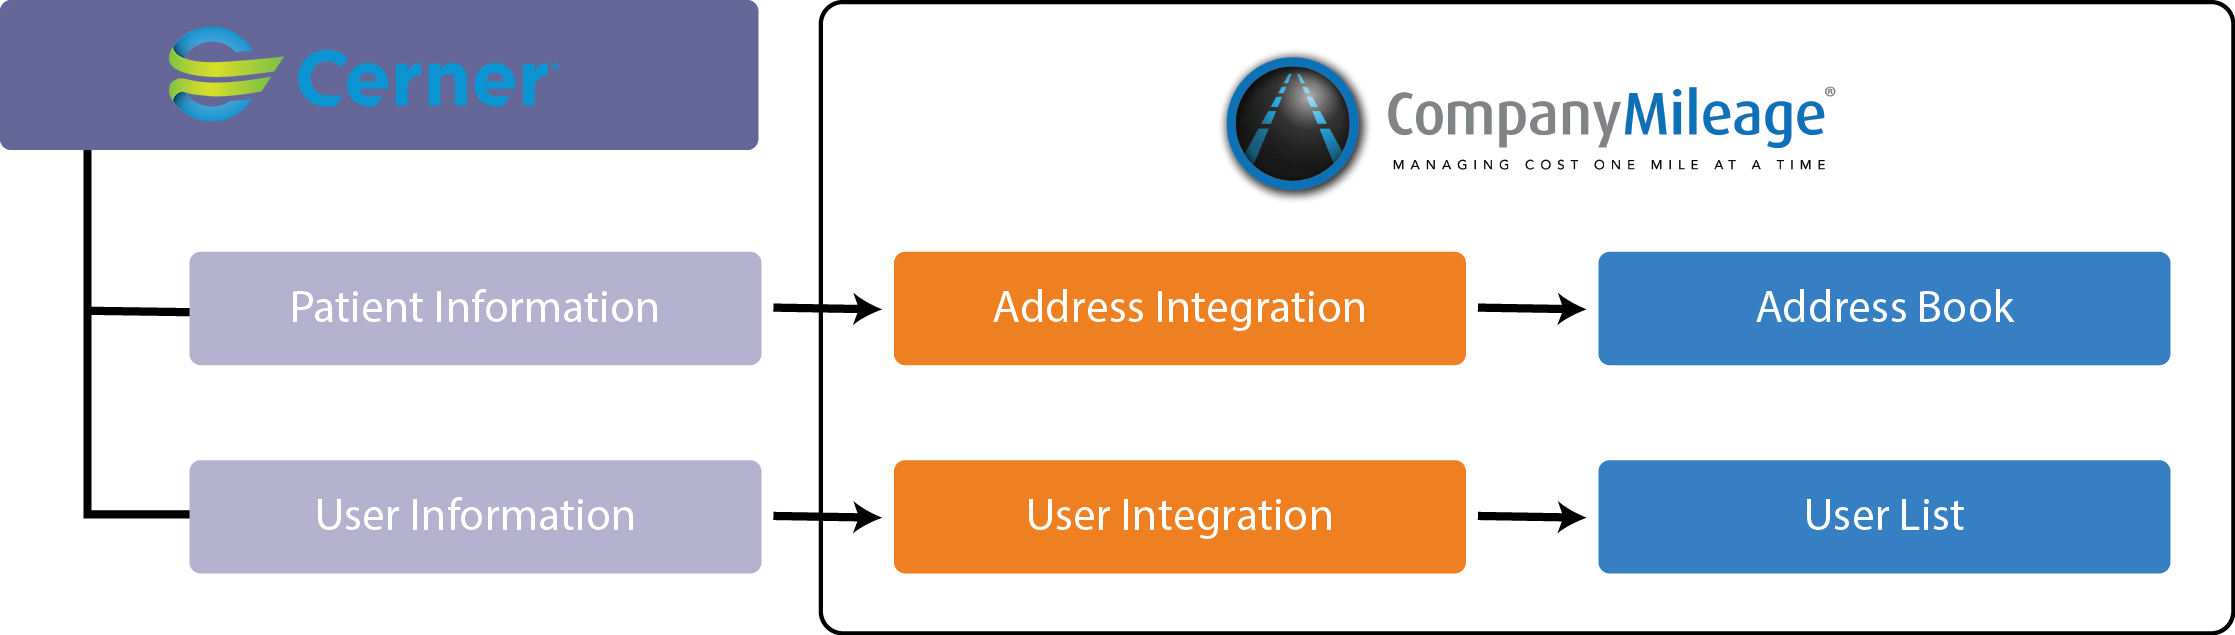 compmileage Cerner Integration